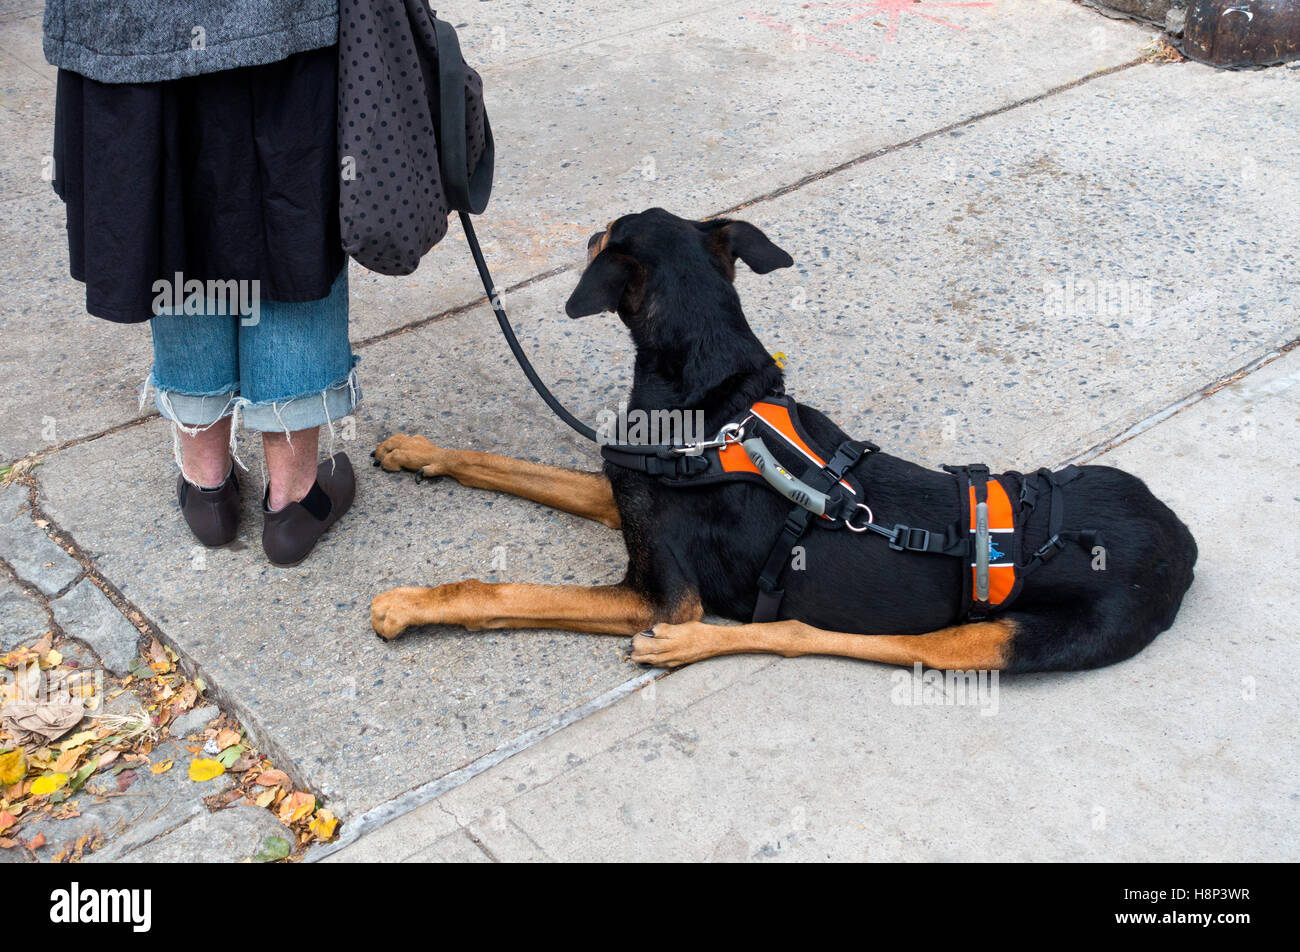 Woman with a dog on lead. The dog is wearing a support harness. - Stock Image